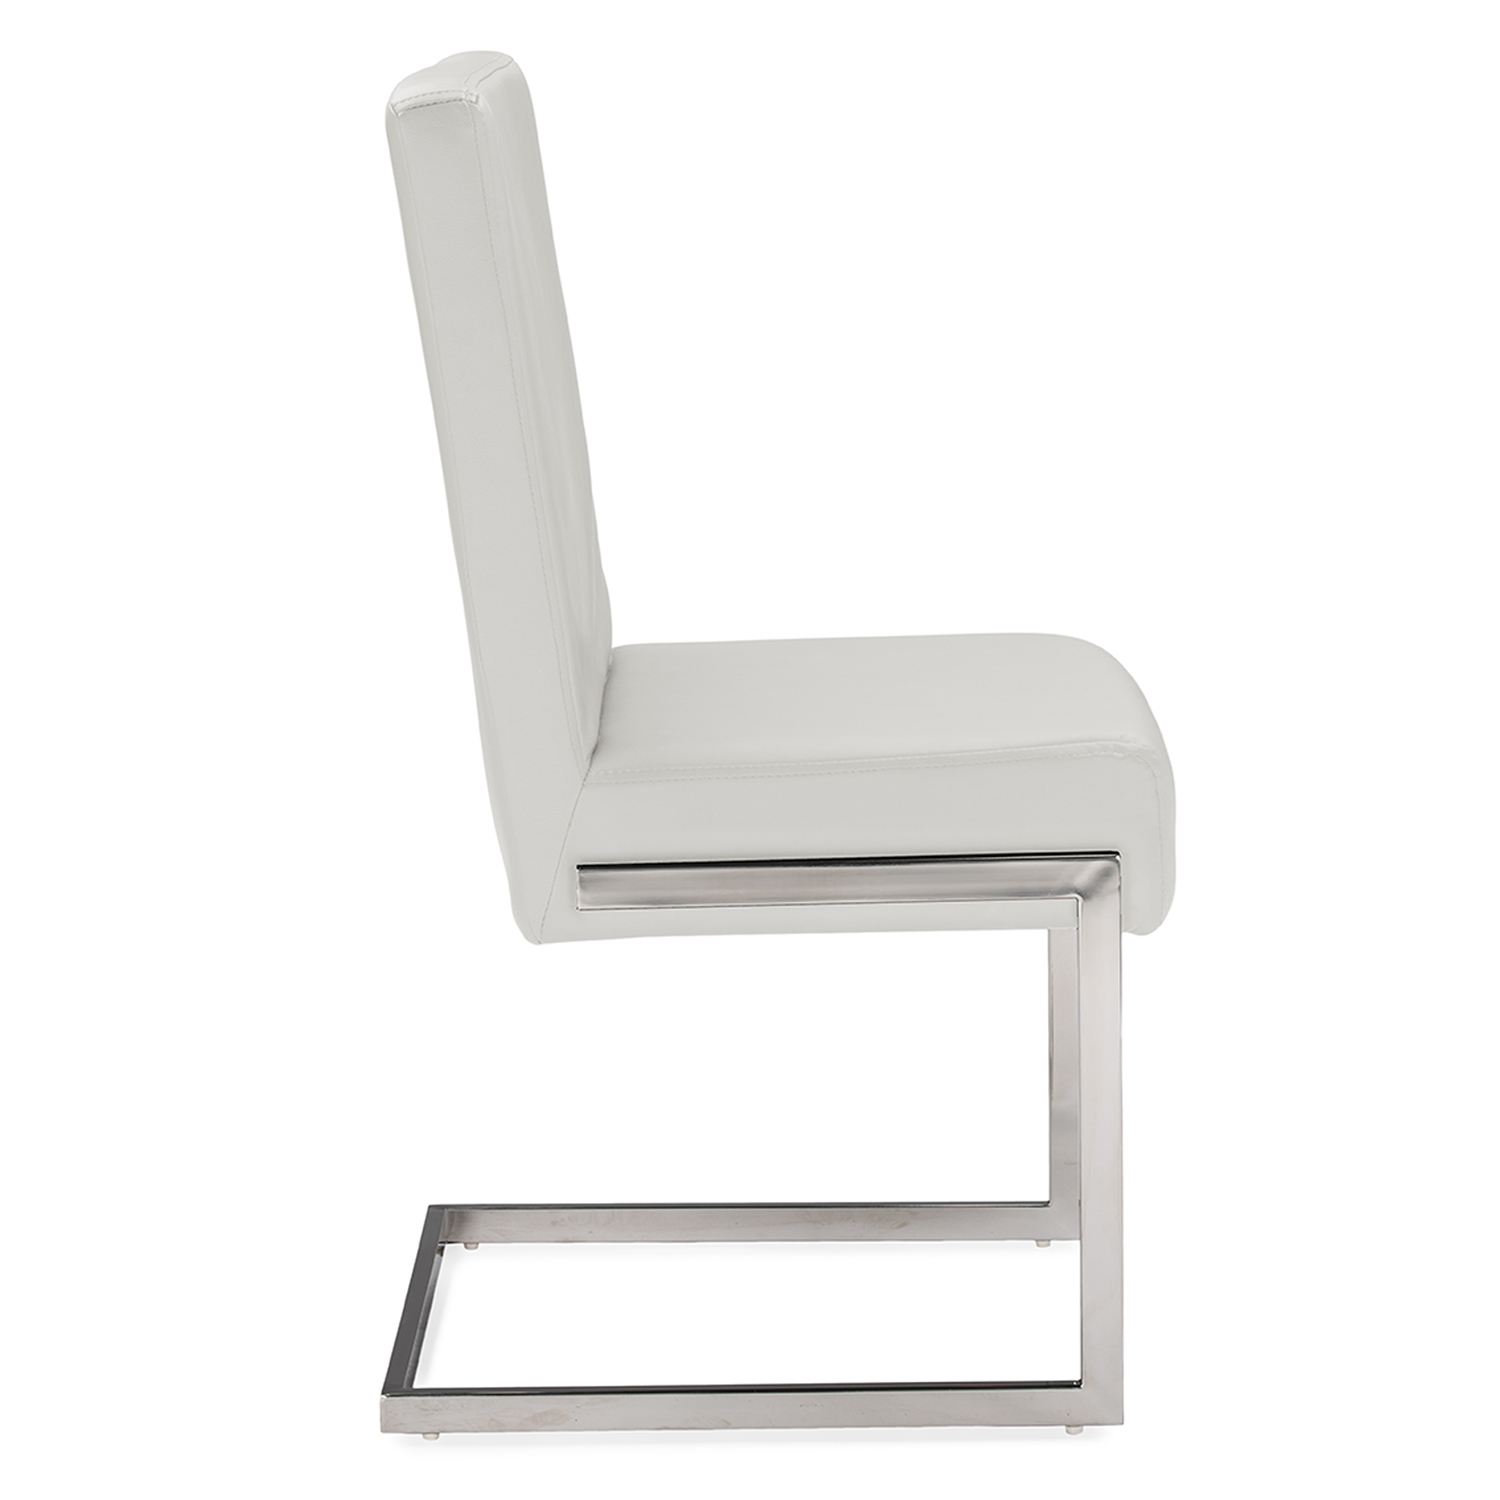 ... Baxton Studio Toulan Modern And Contemporary White Faux Leather  Upholstered Stainless Steel Dining Chair (Set ...